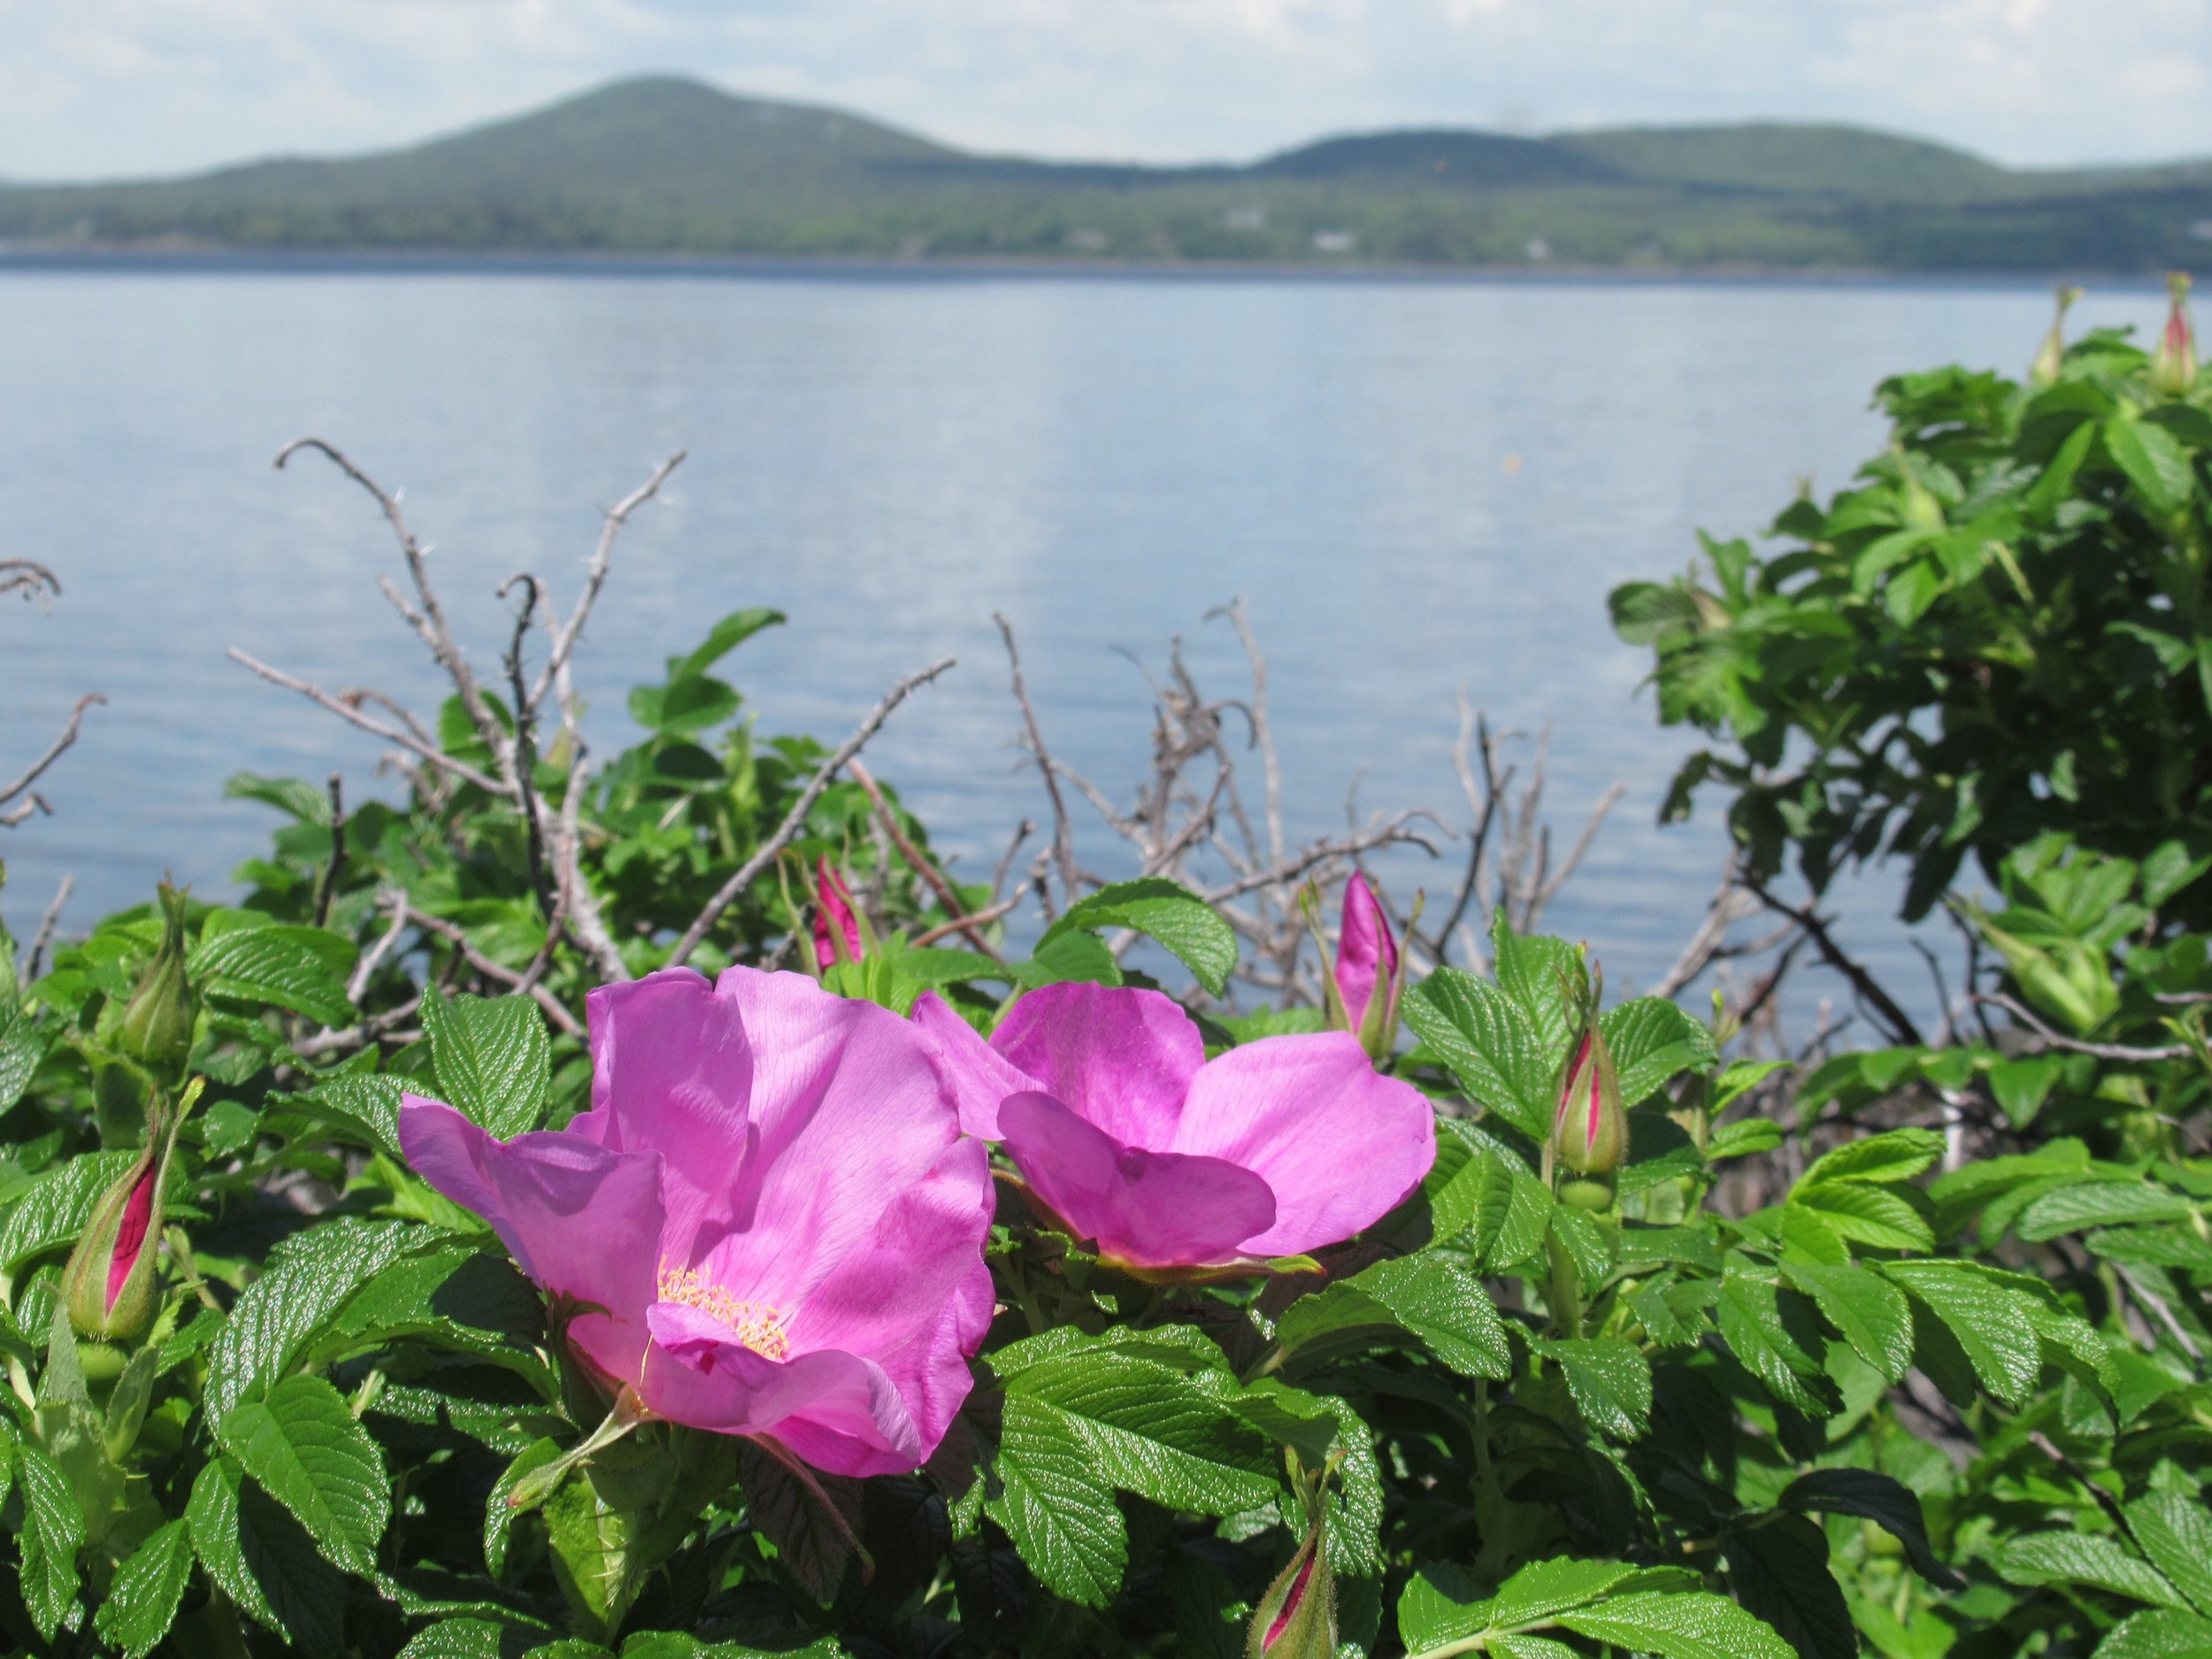 Looking back at the Camden Hills from Isleboro in June means Pink and white roses are in full bloom.